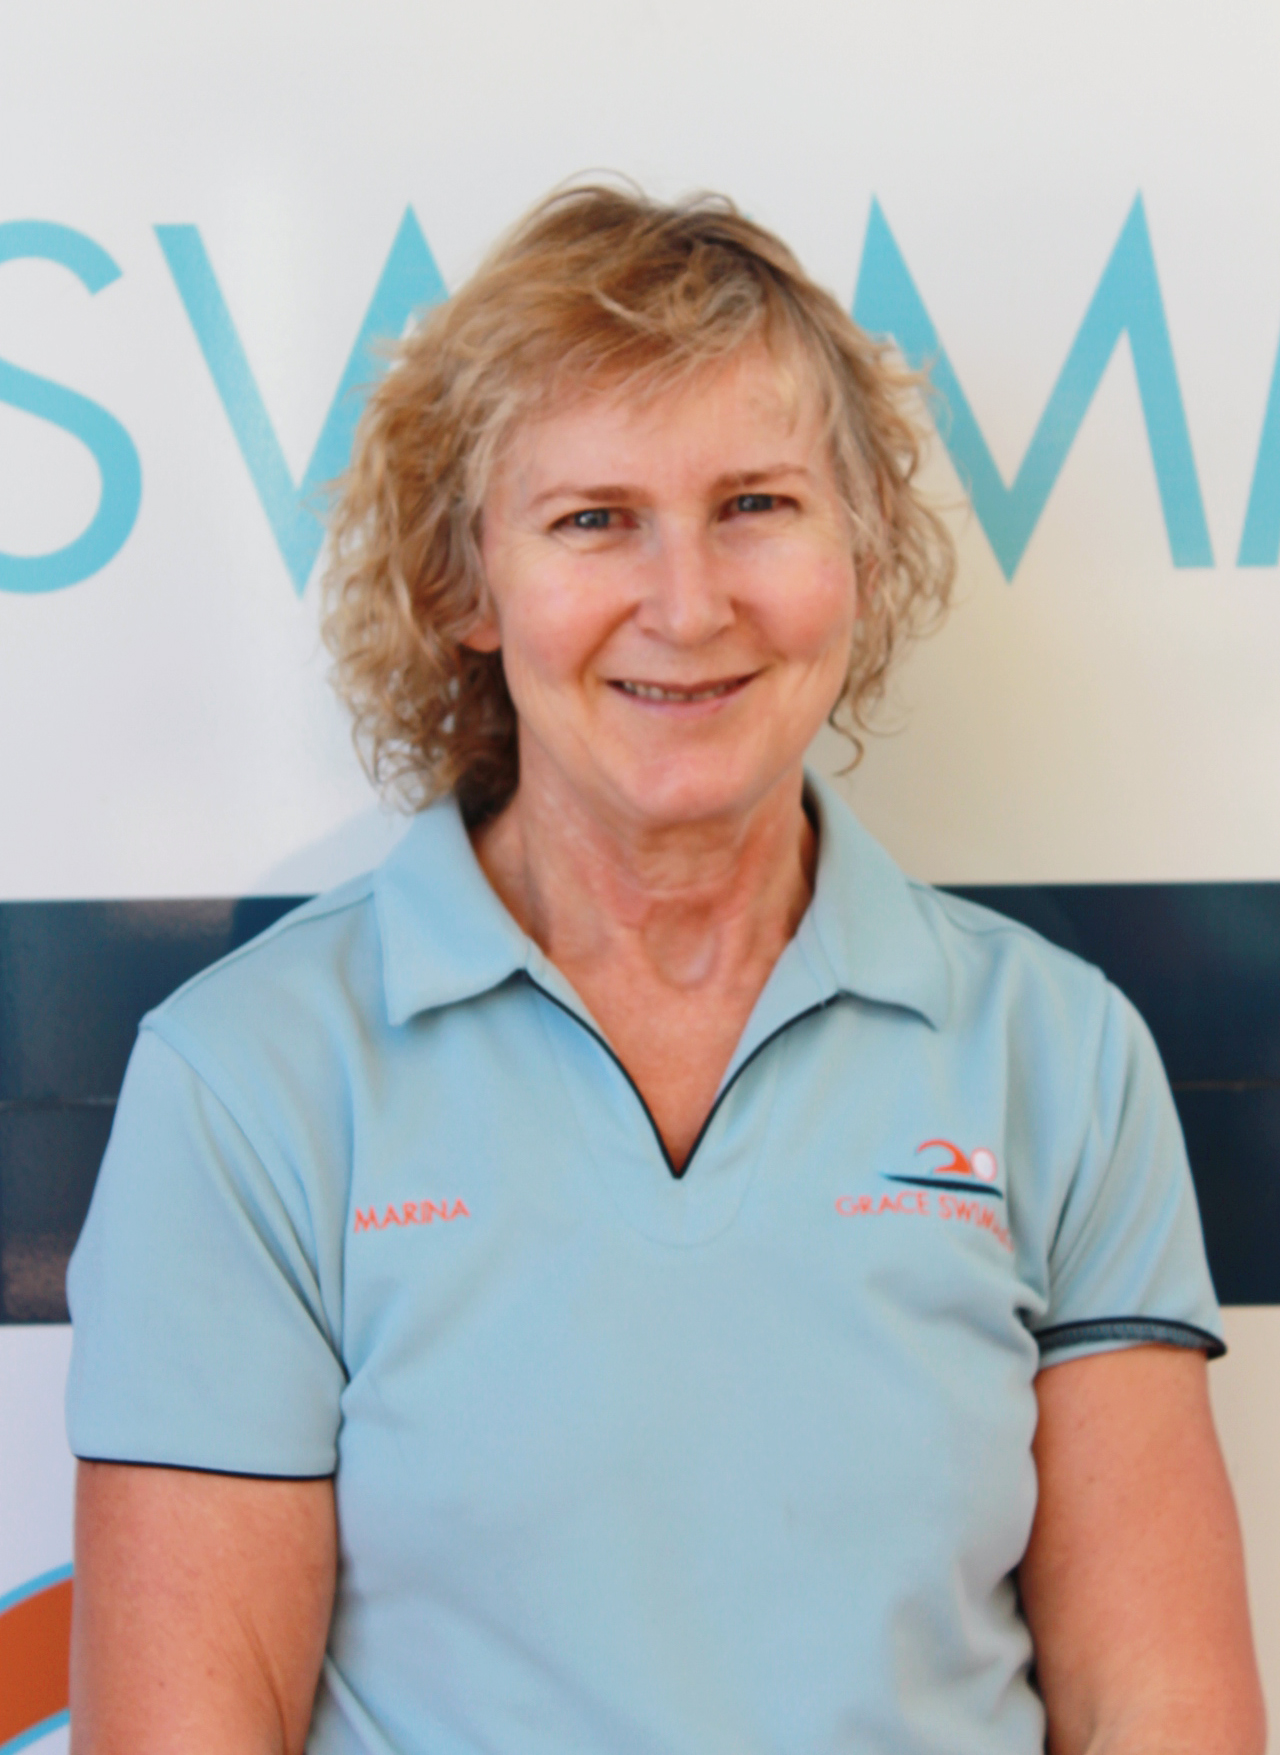 Marina - Swim InstructorMarina has 5 years teaching experience, and because of her love of the ocean and scuba diving, she has always thought it really important to be able to swim efficiently in order to enjoy the water. The joy of being in the water is what she always likes to pass onto her students.